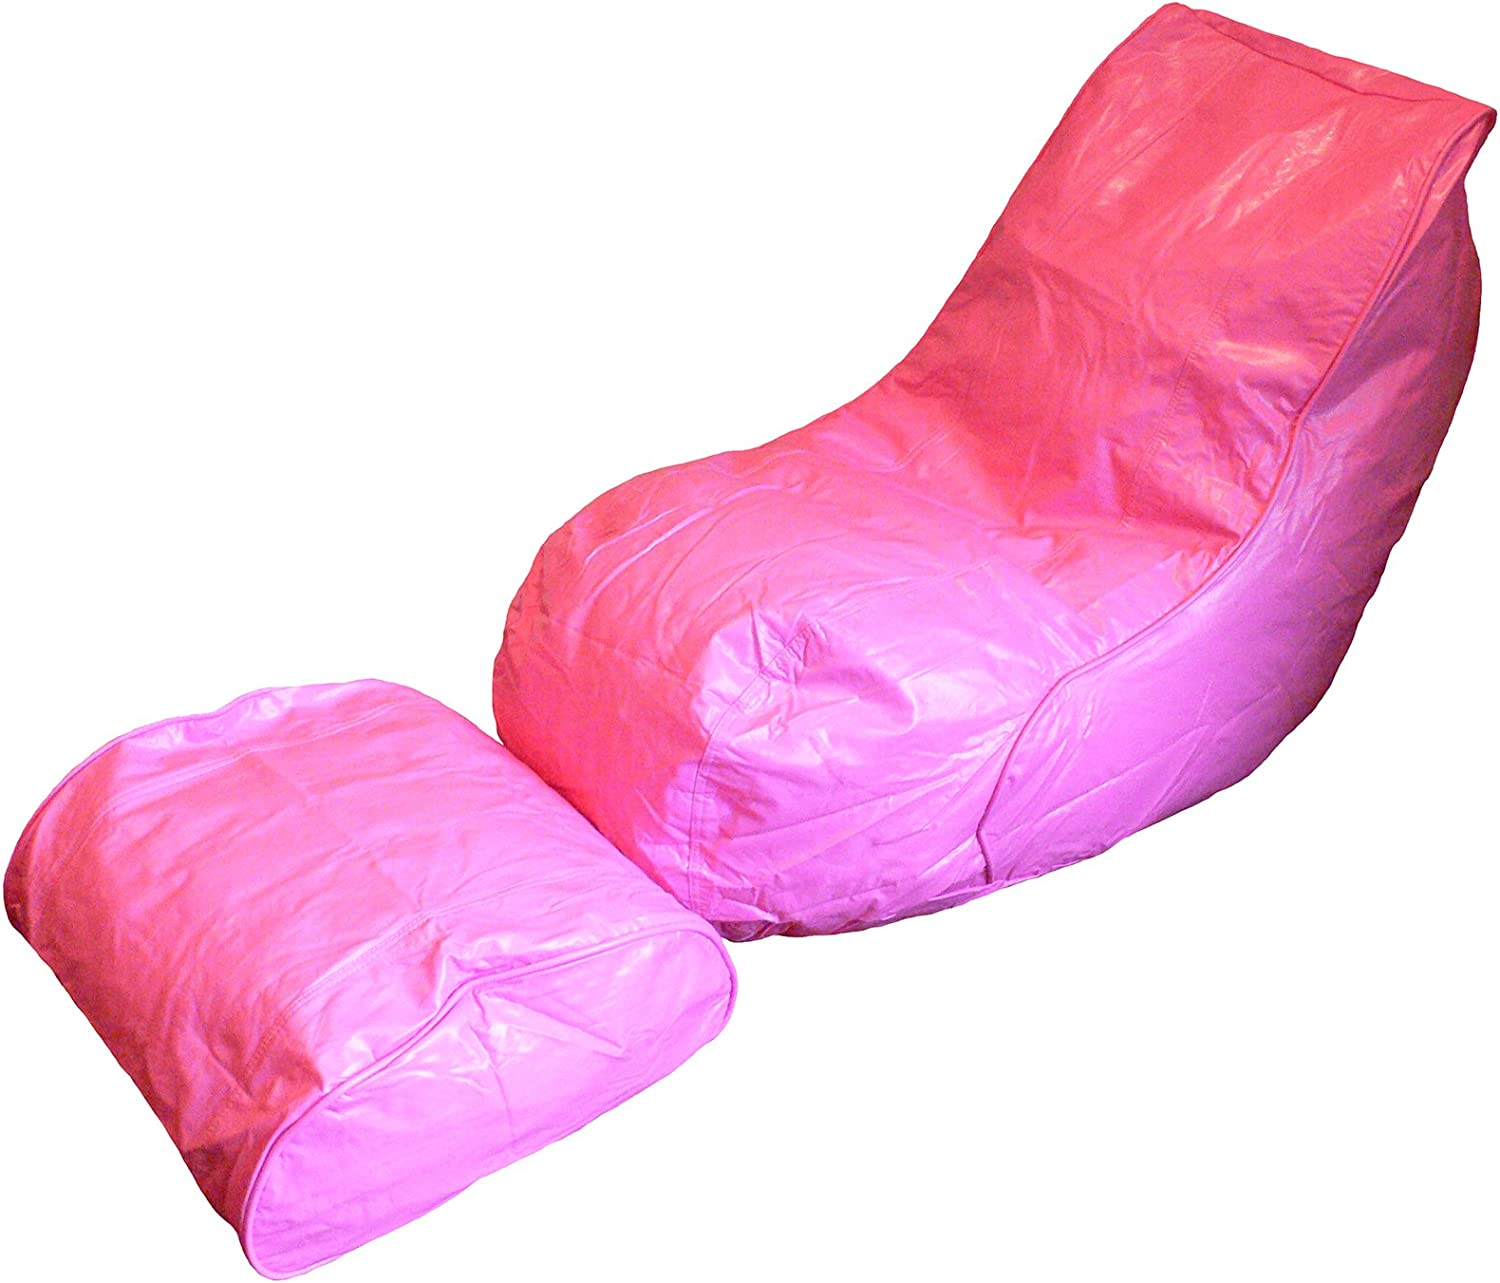 Boscoman - Vinyl Beanbag Adult Lounger w footrest Chair - Pink (BOX L)